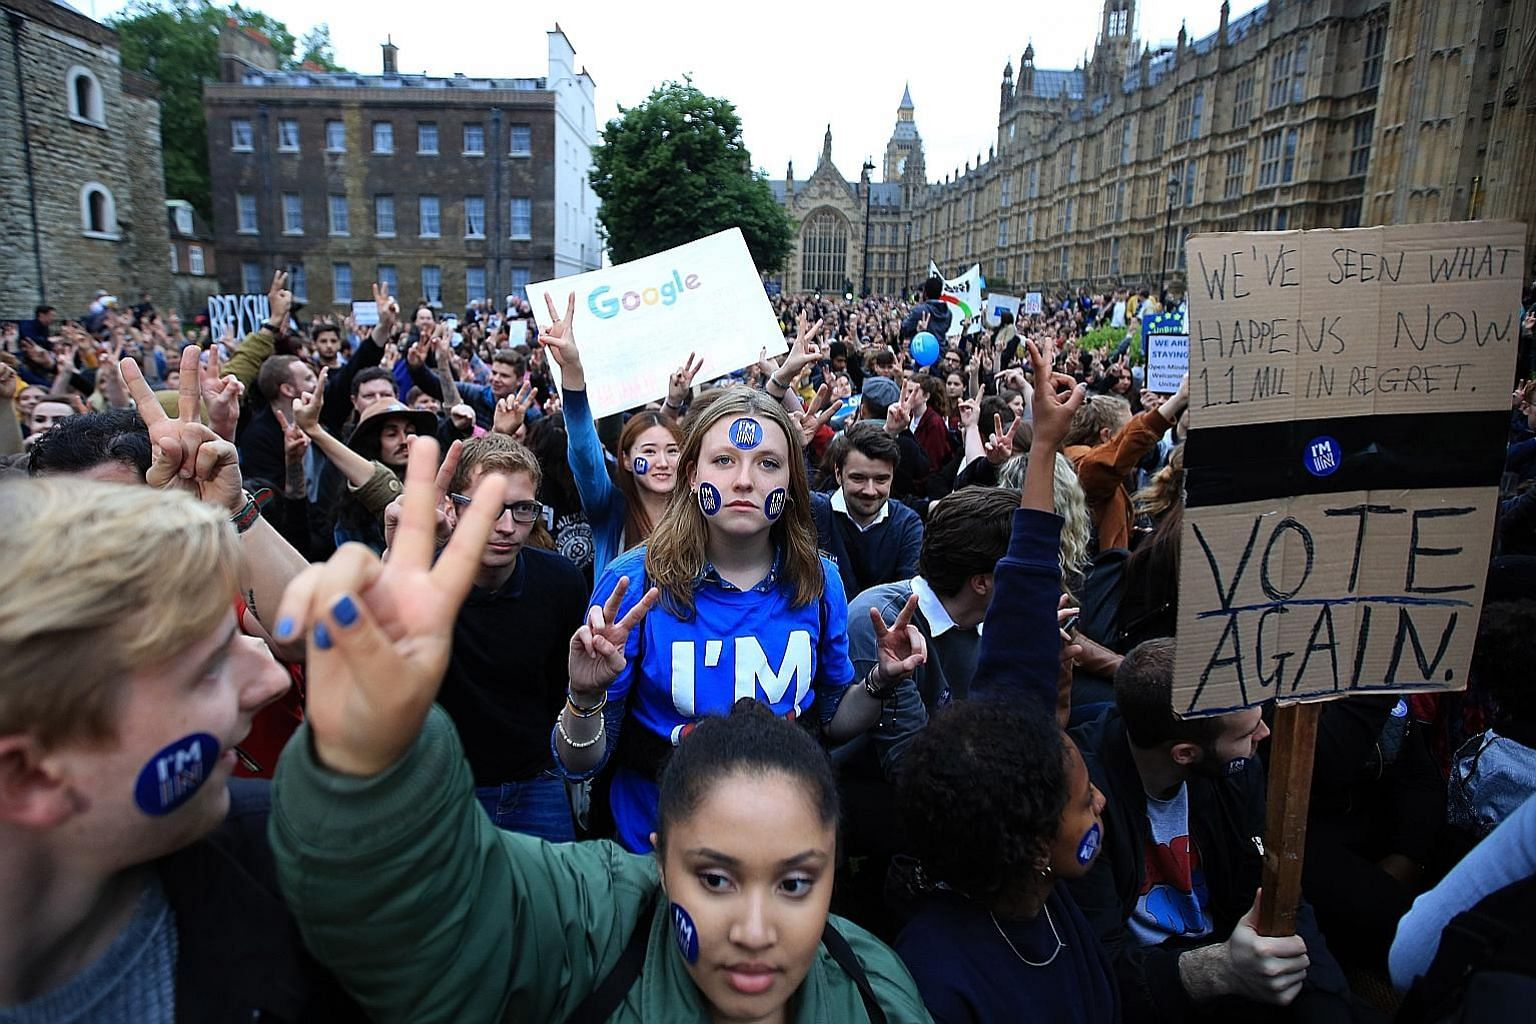 Demonstrators outside the Houses of Parliament in London during a protest to show solidarity with the European Union, just days after Britons voted to leave the EU on June 23.